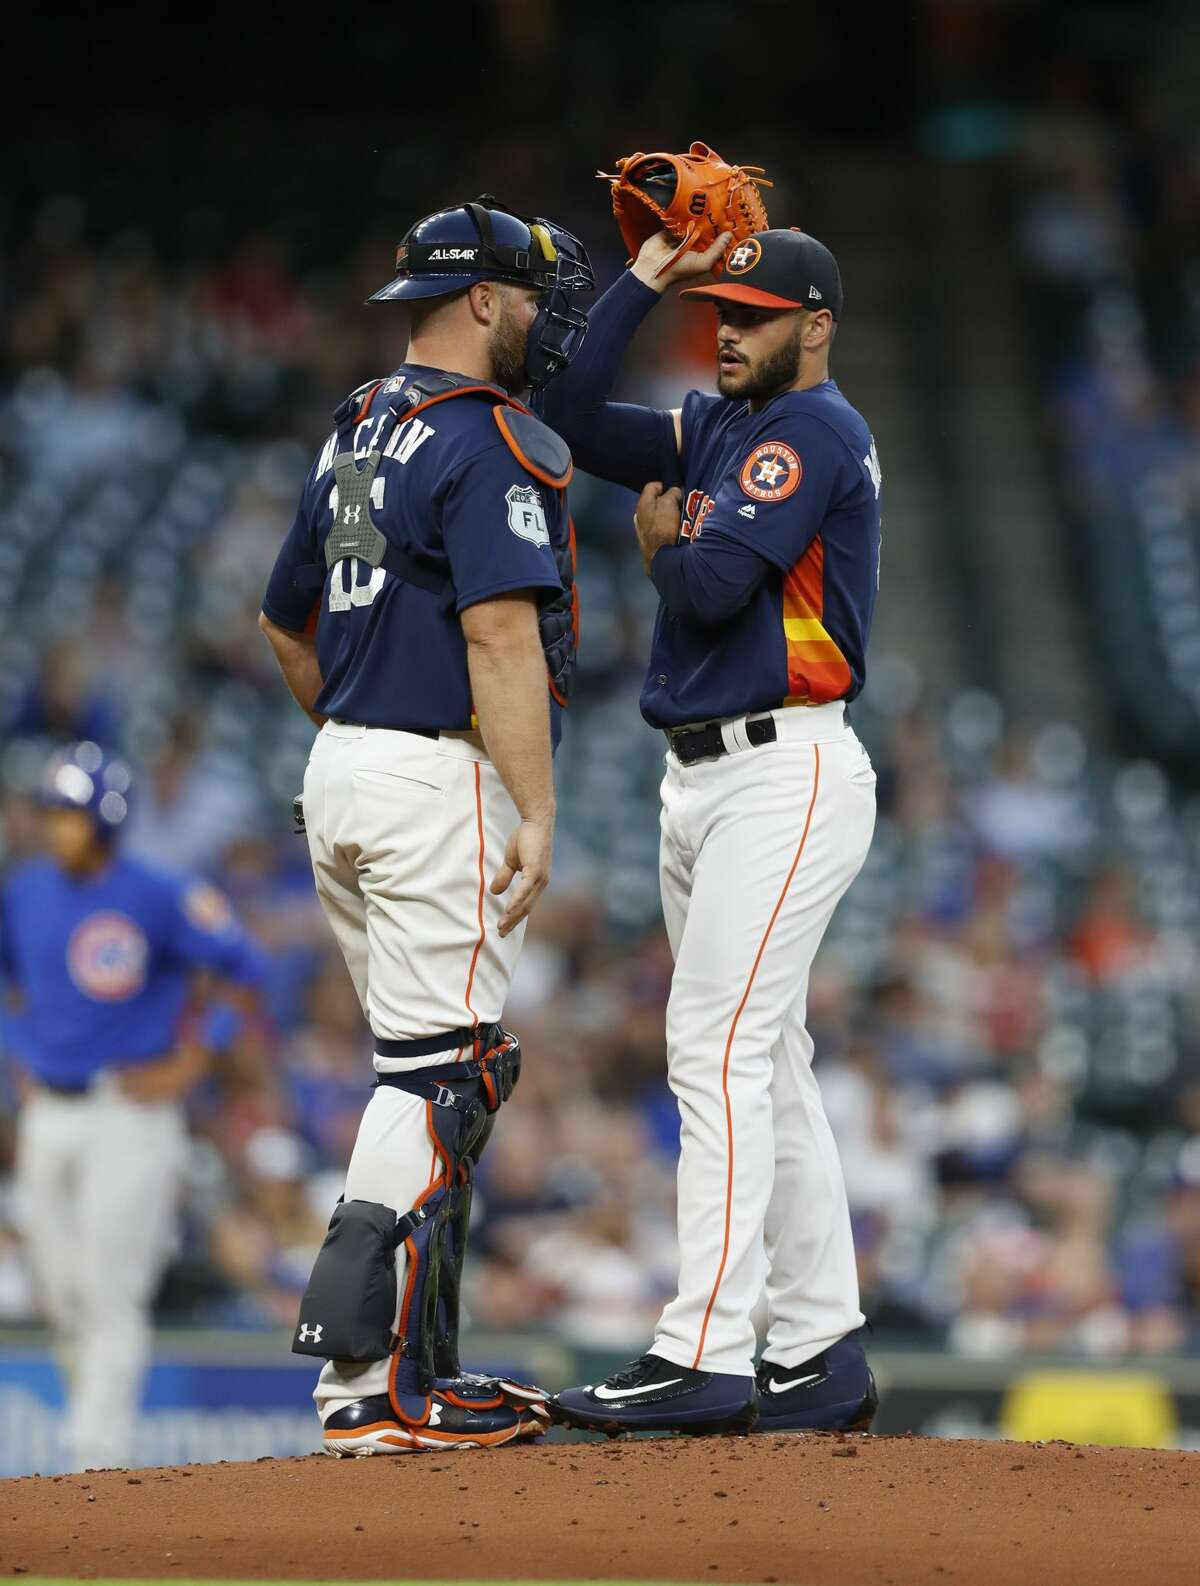 Houston Astros starting pitcher Lance McCullers Jr. (43) reacts with catcher Brian McCann (16) after giving up a run during the second inning of an MLB exhibition game at Minute Maid Park, Thursday, March 30, 2017, in Houston. ( Karen Warren / Houston Chronicle )